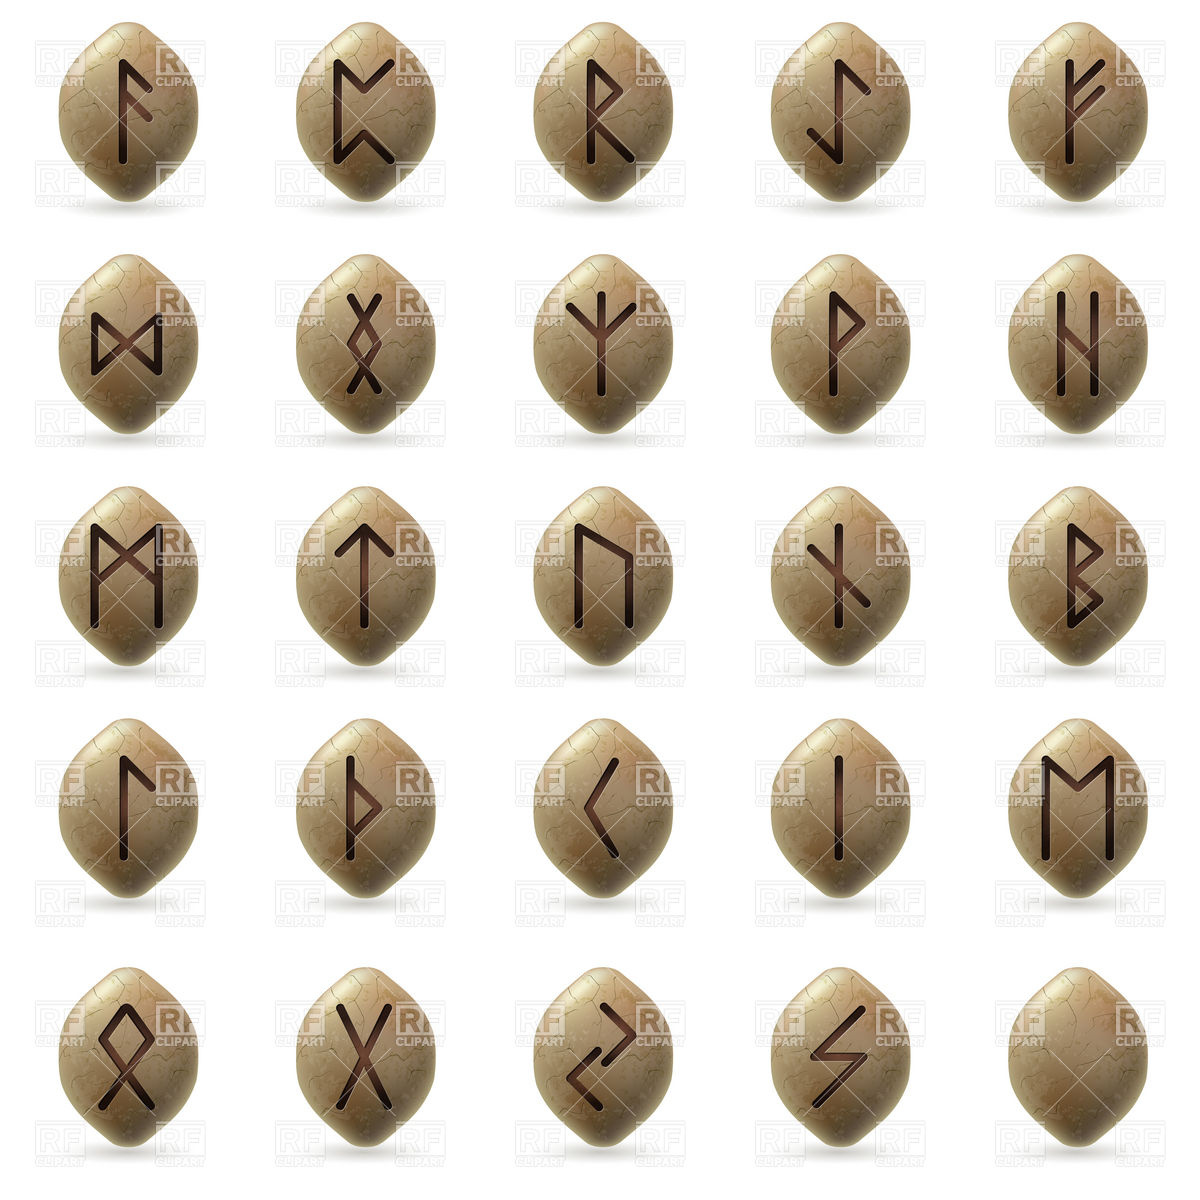 Runes clipart #4, Download drawings